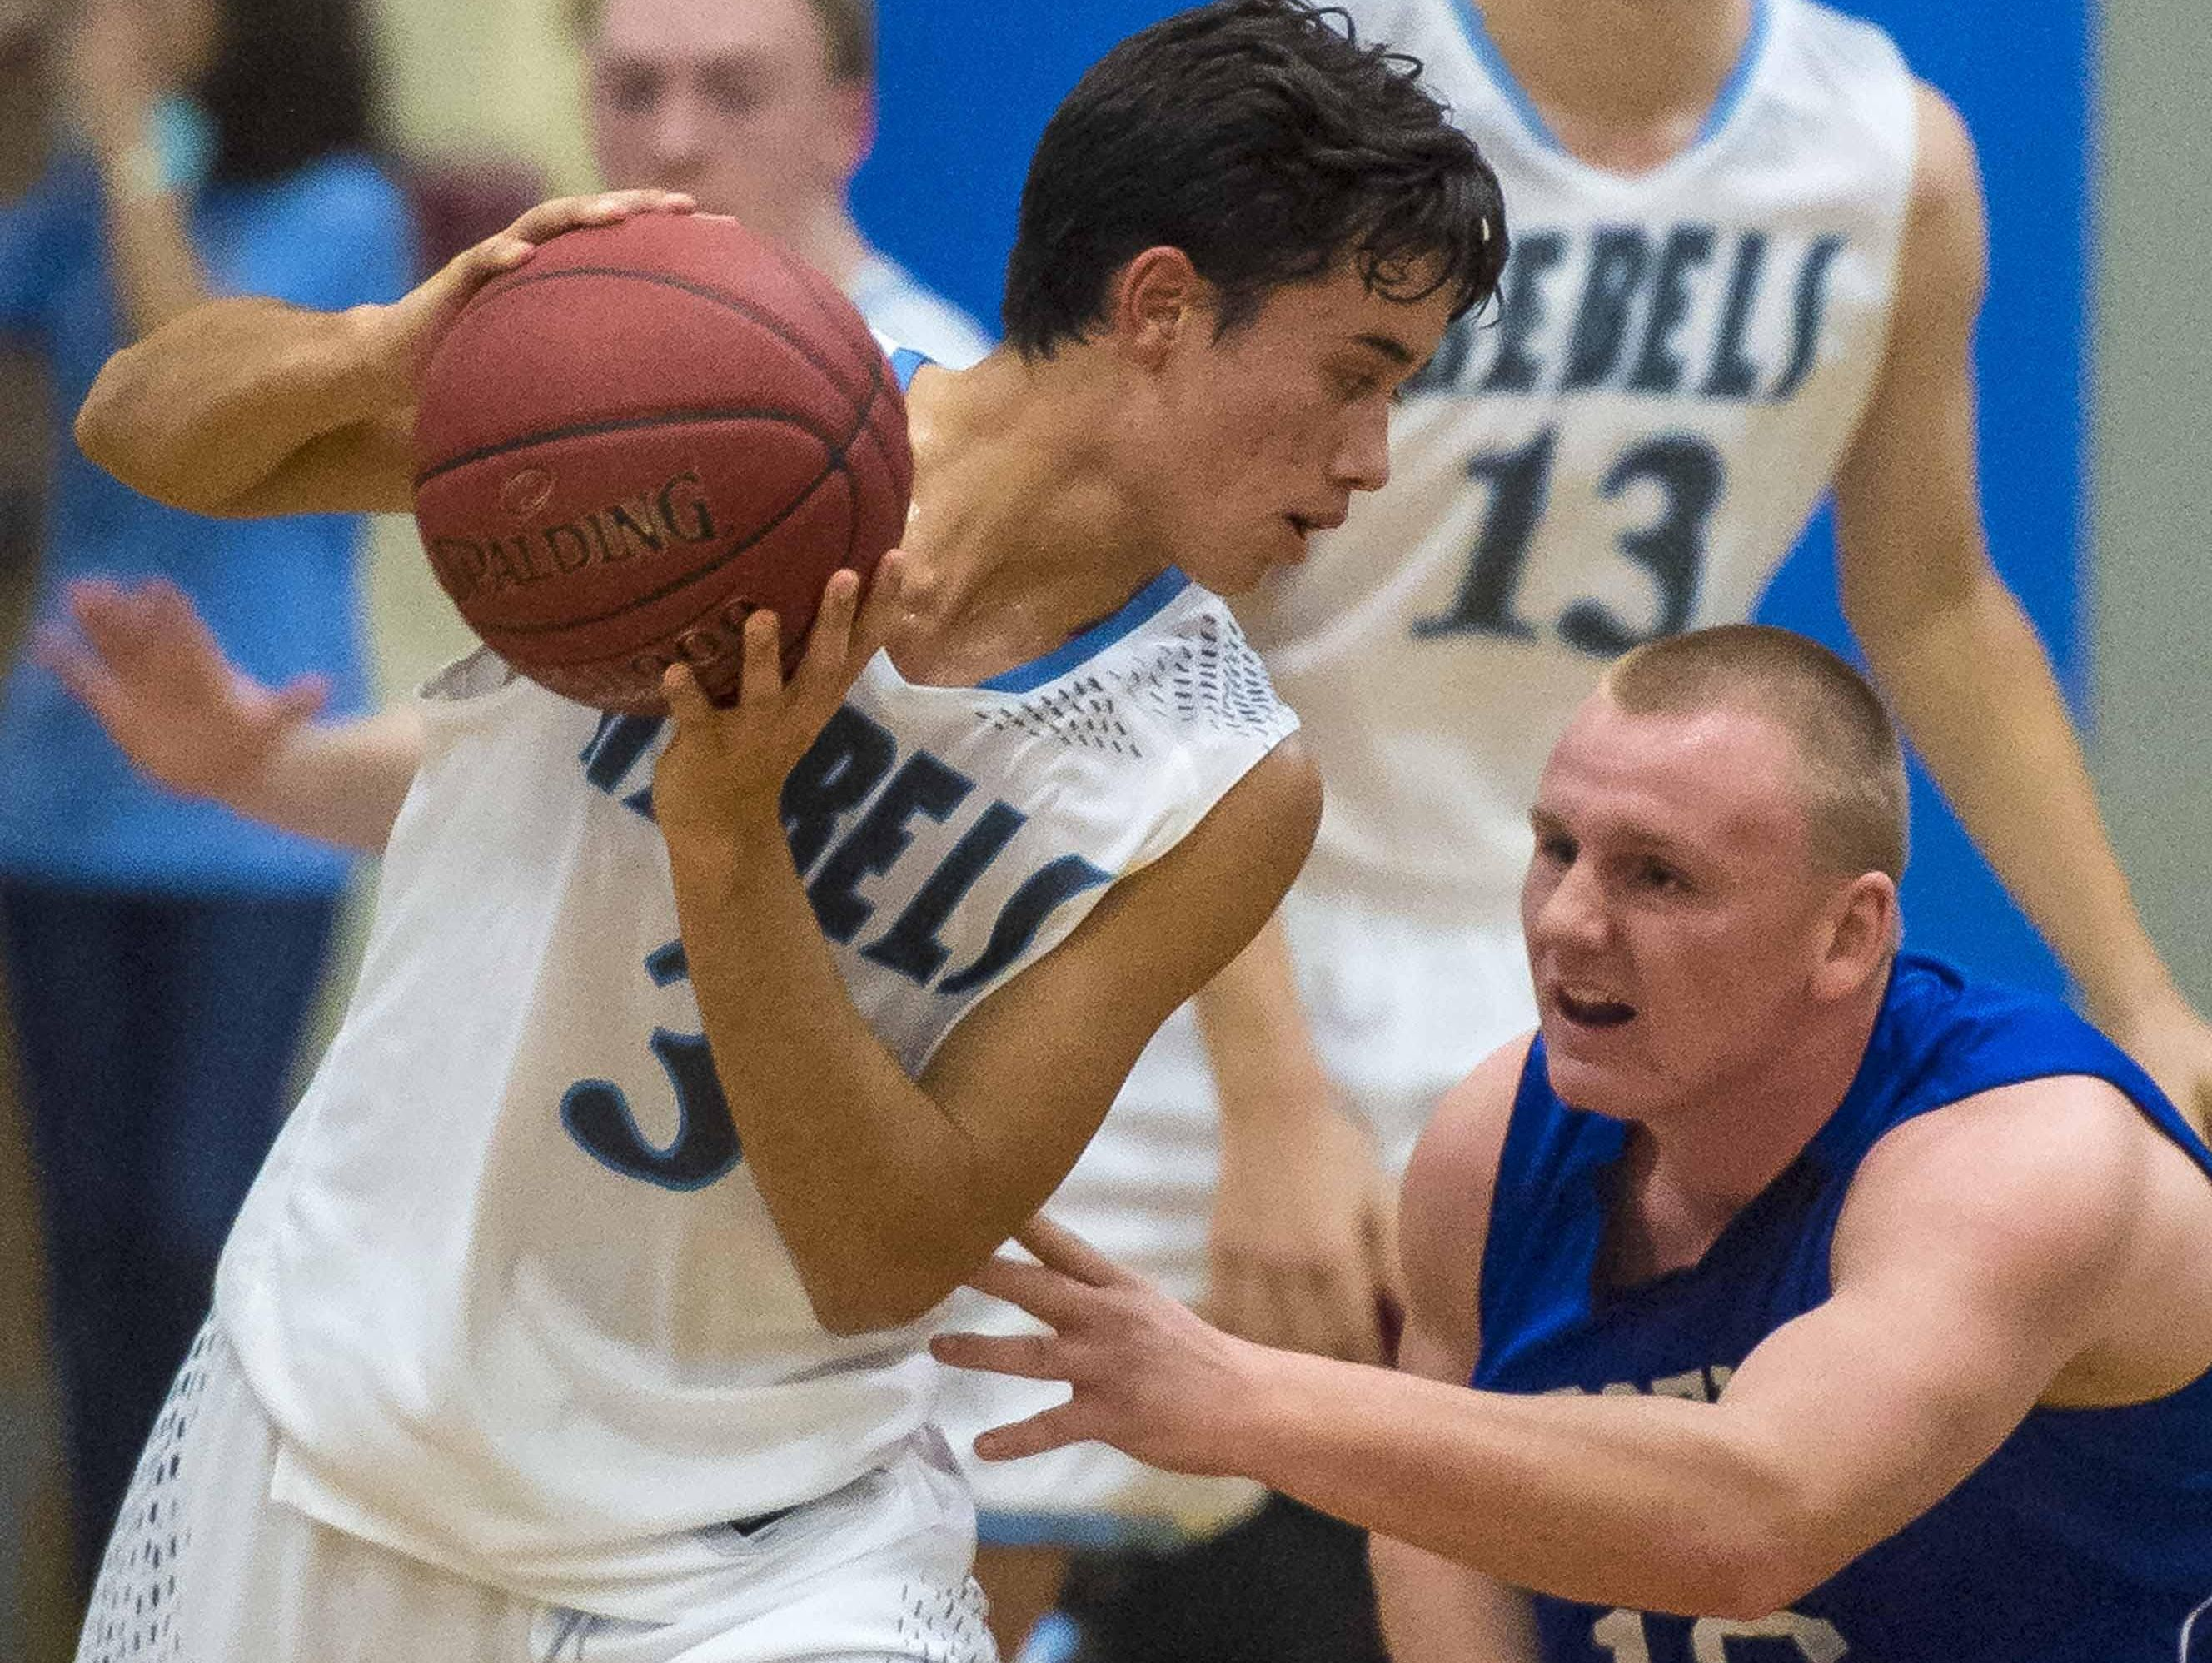 South Burlington's Ben Moran, left, is pressured by Vergennes' Devon Kimball in South Burlington on Wednesday.